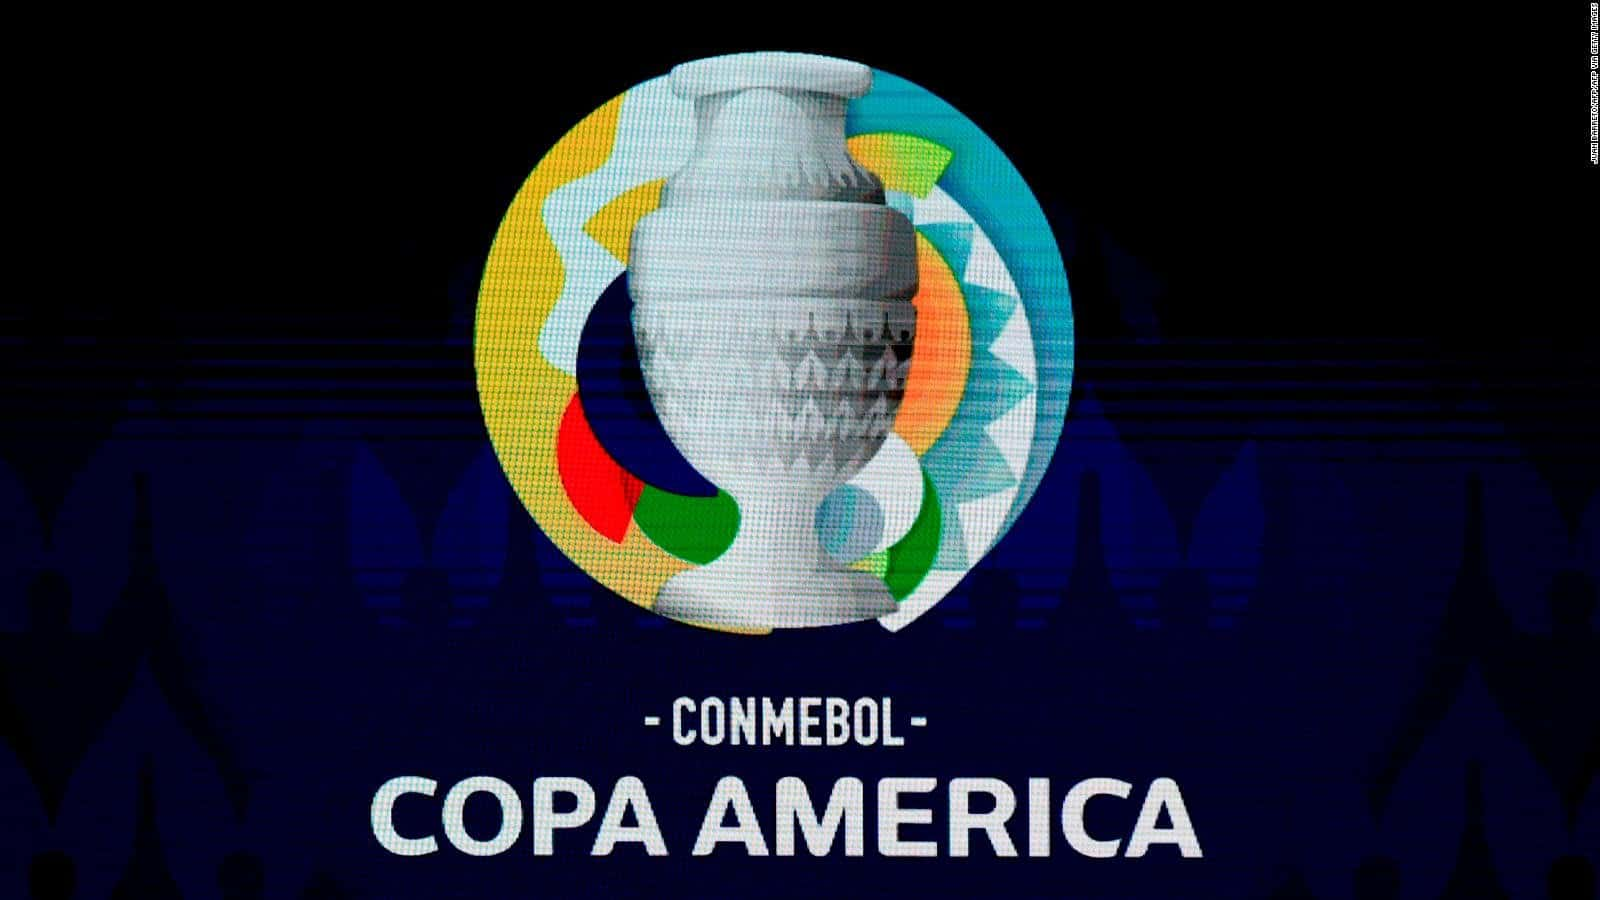 Copa America 2021 will finally take place in Brazil, Confirmed!